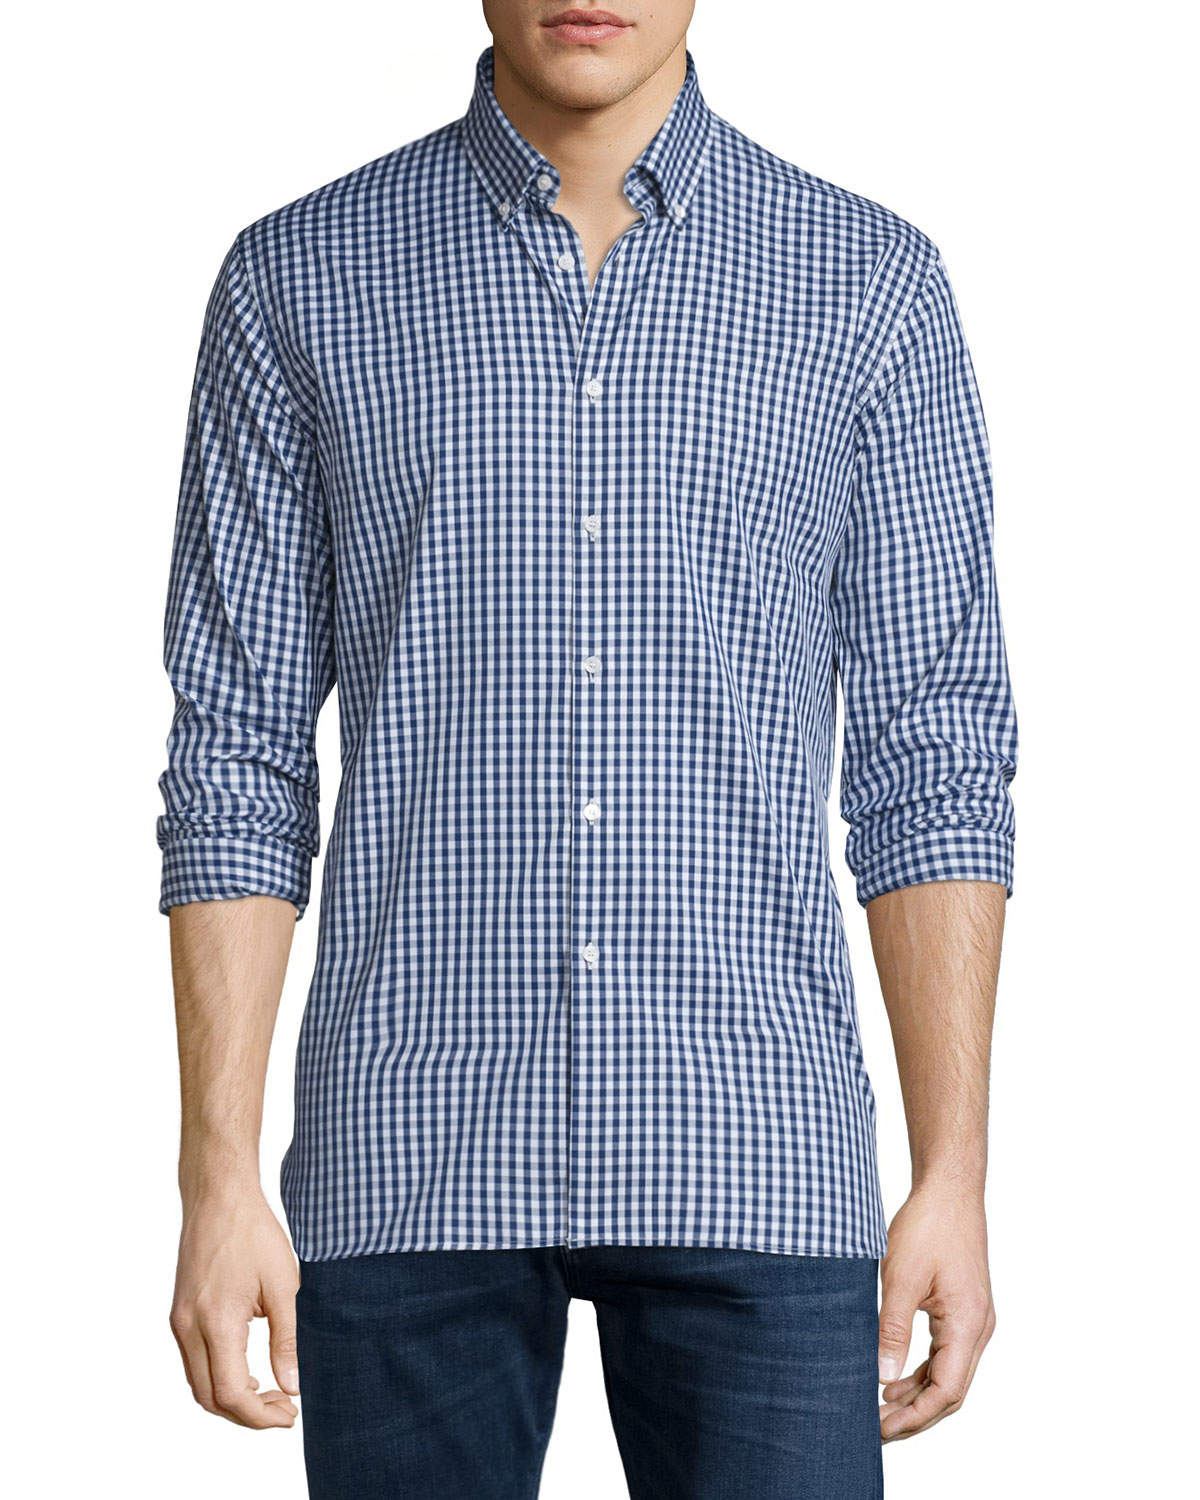 Matlock Gingham Long-Sleeve Sport Shirt, Bright Navy